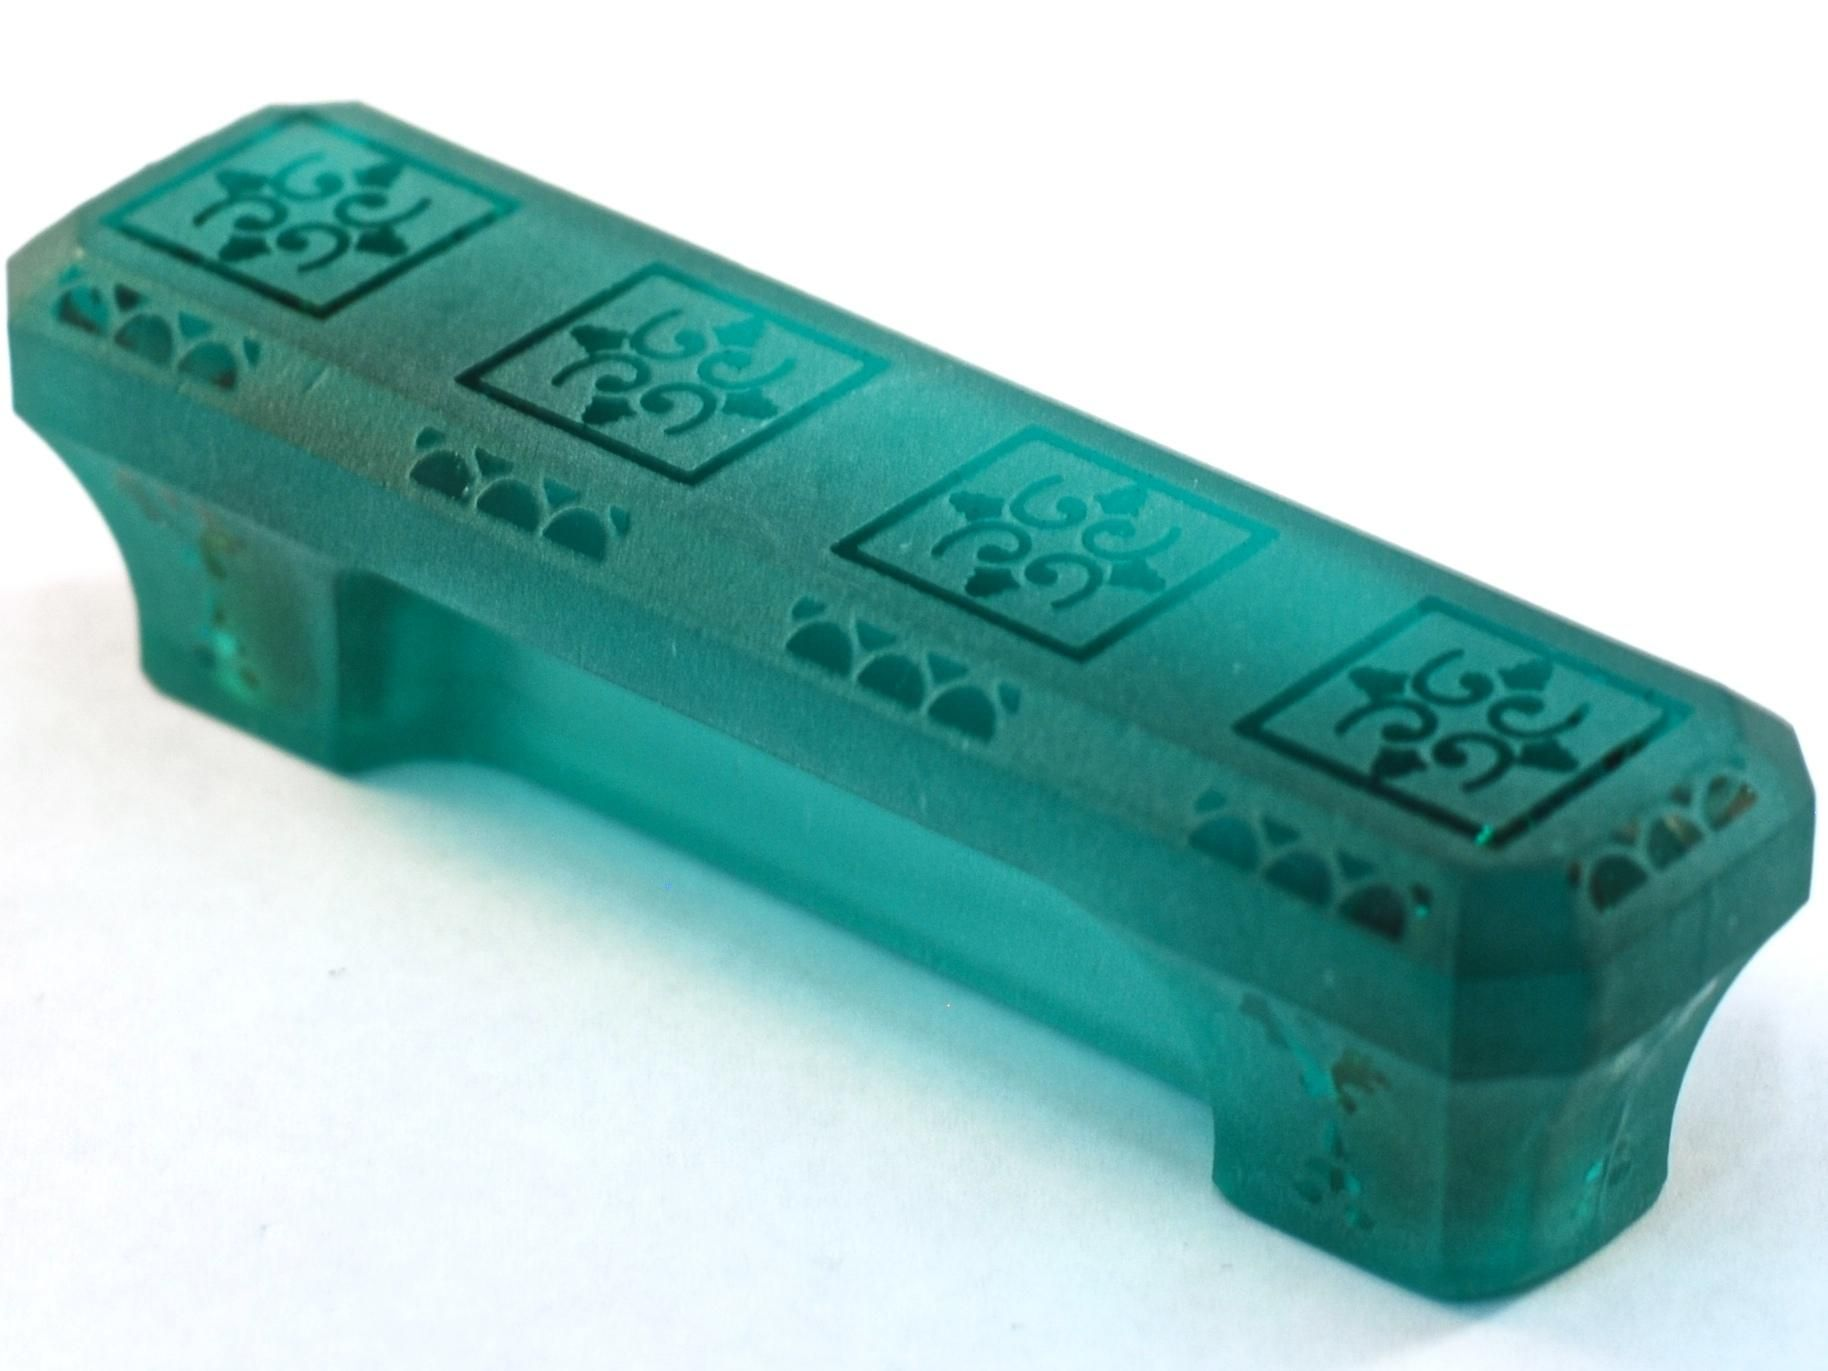 Etched Glass Cabinet Pull in Turquoise by Cal Crystal: $14.40 ...